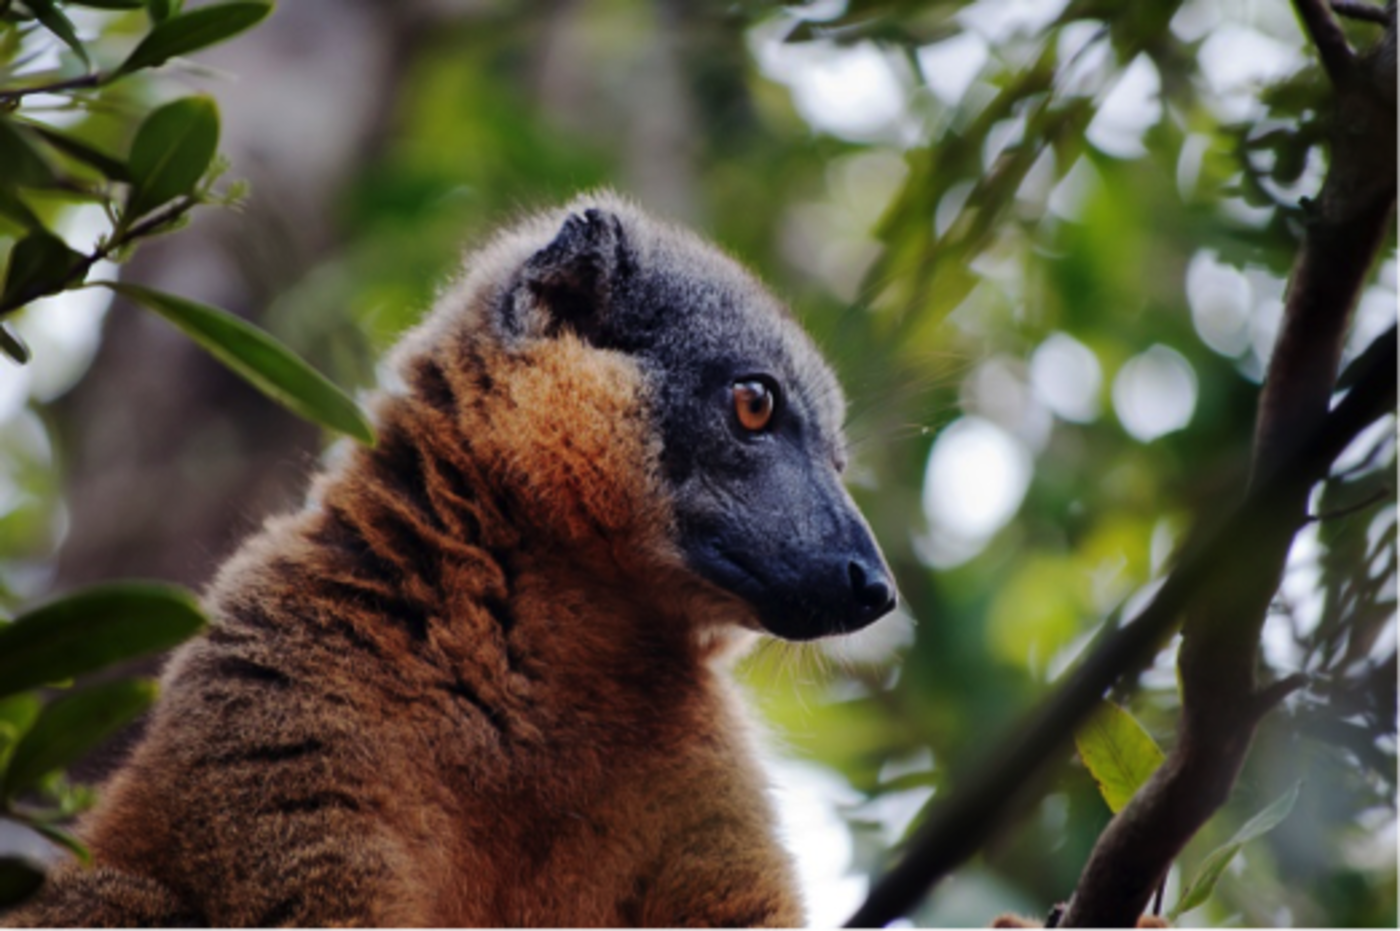 A close up of a Lemur in a tree